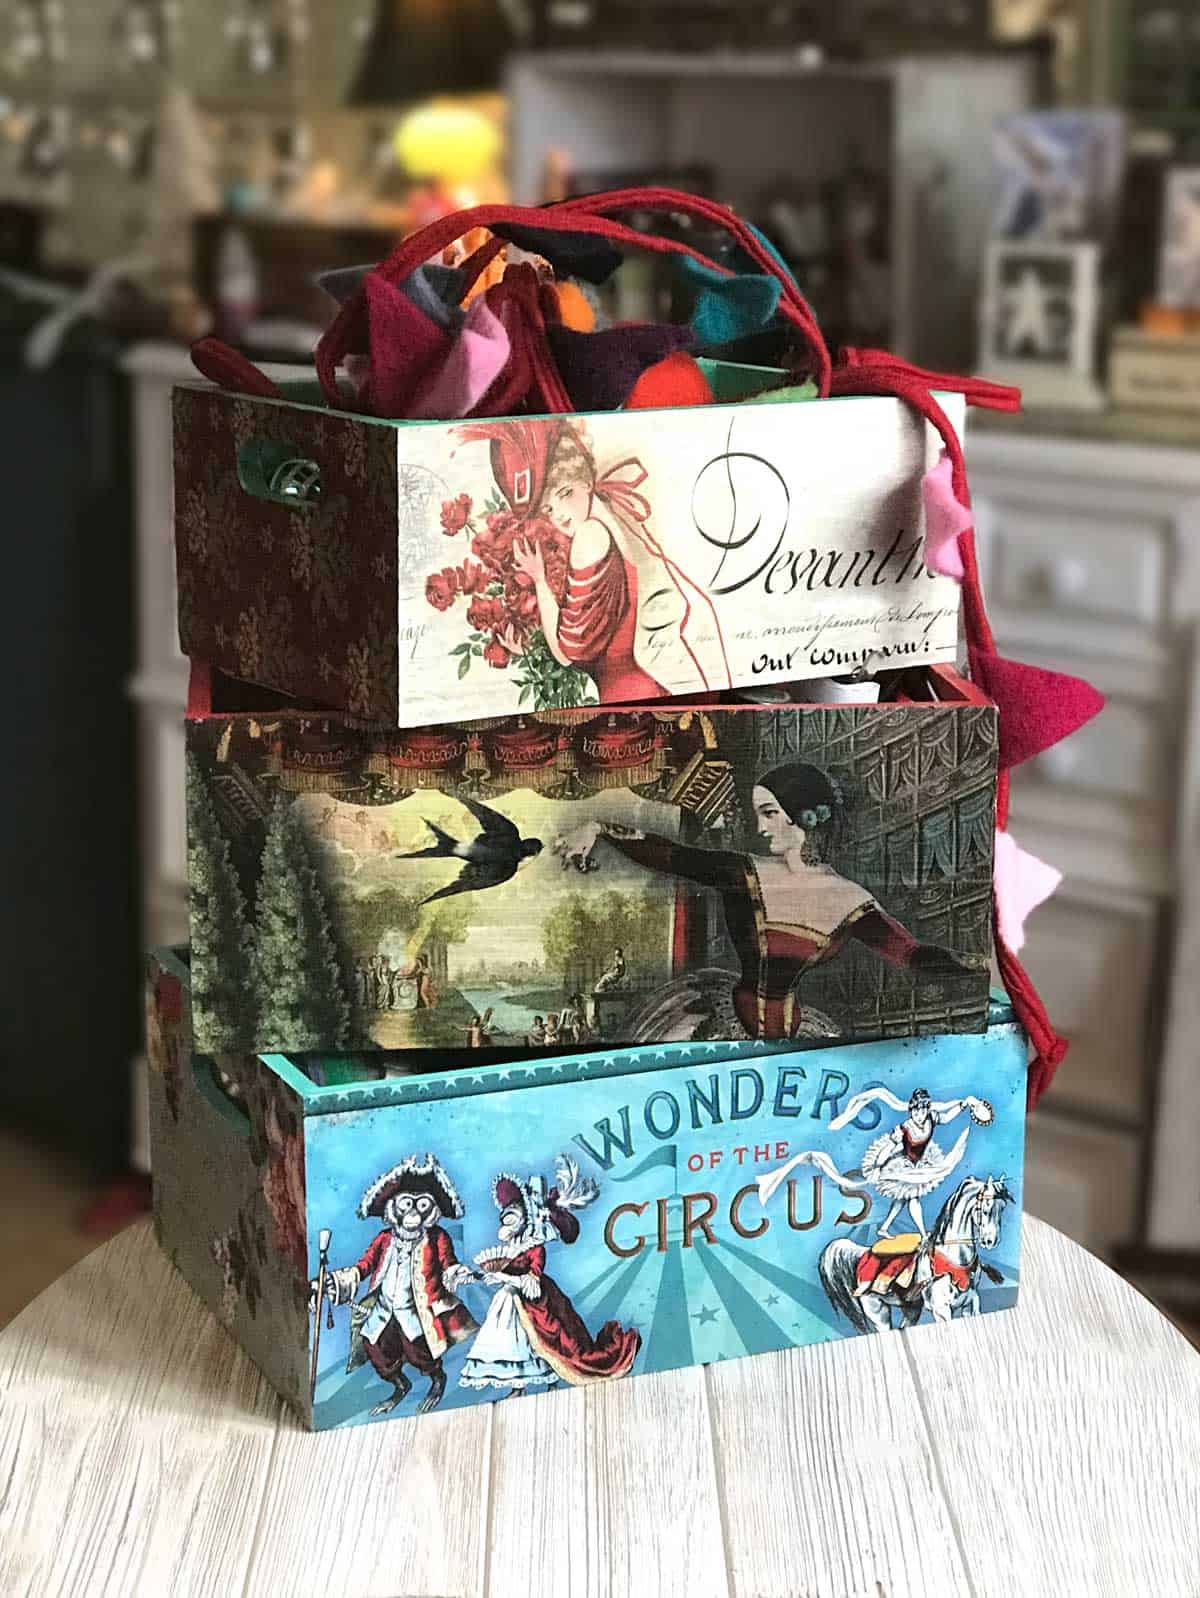 DIY Storage Boxes - My finished product! Read the whole process that I went through to do these including products and supplies I used! They turned out amazing... I LOVE them!